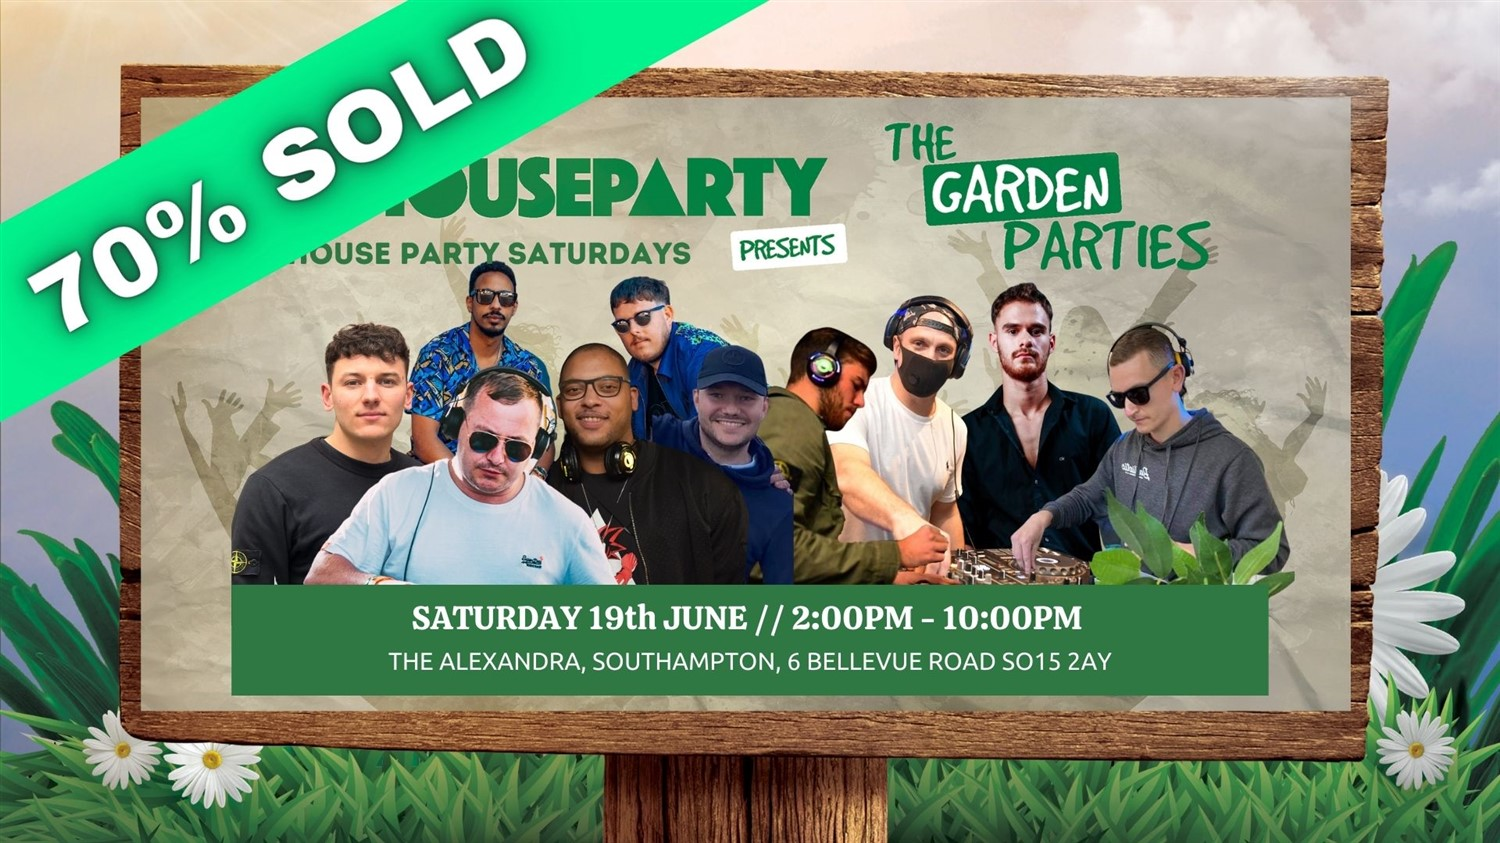 House Party Presents: The Launch Garden Party - Southampton  on Jun 19, 14:00@The Alex - Buy tickets and Get information on House Party Europe Ltd